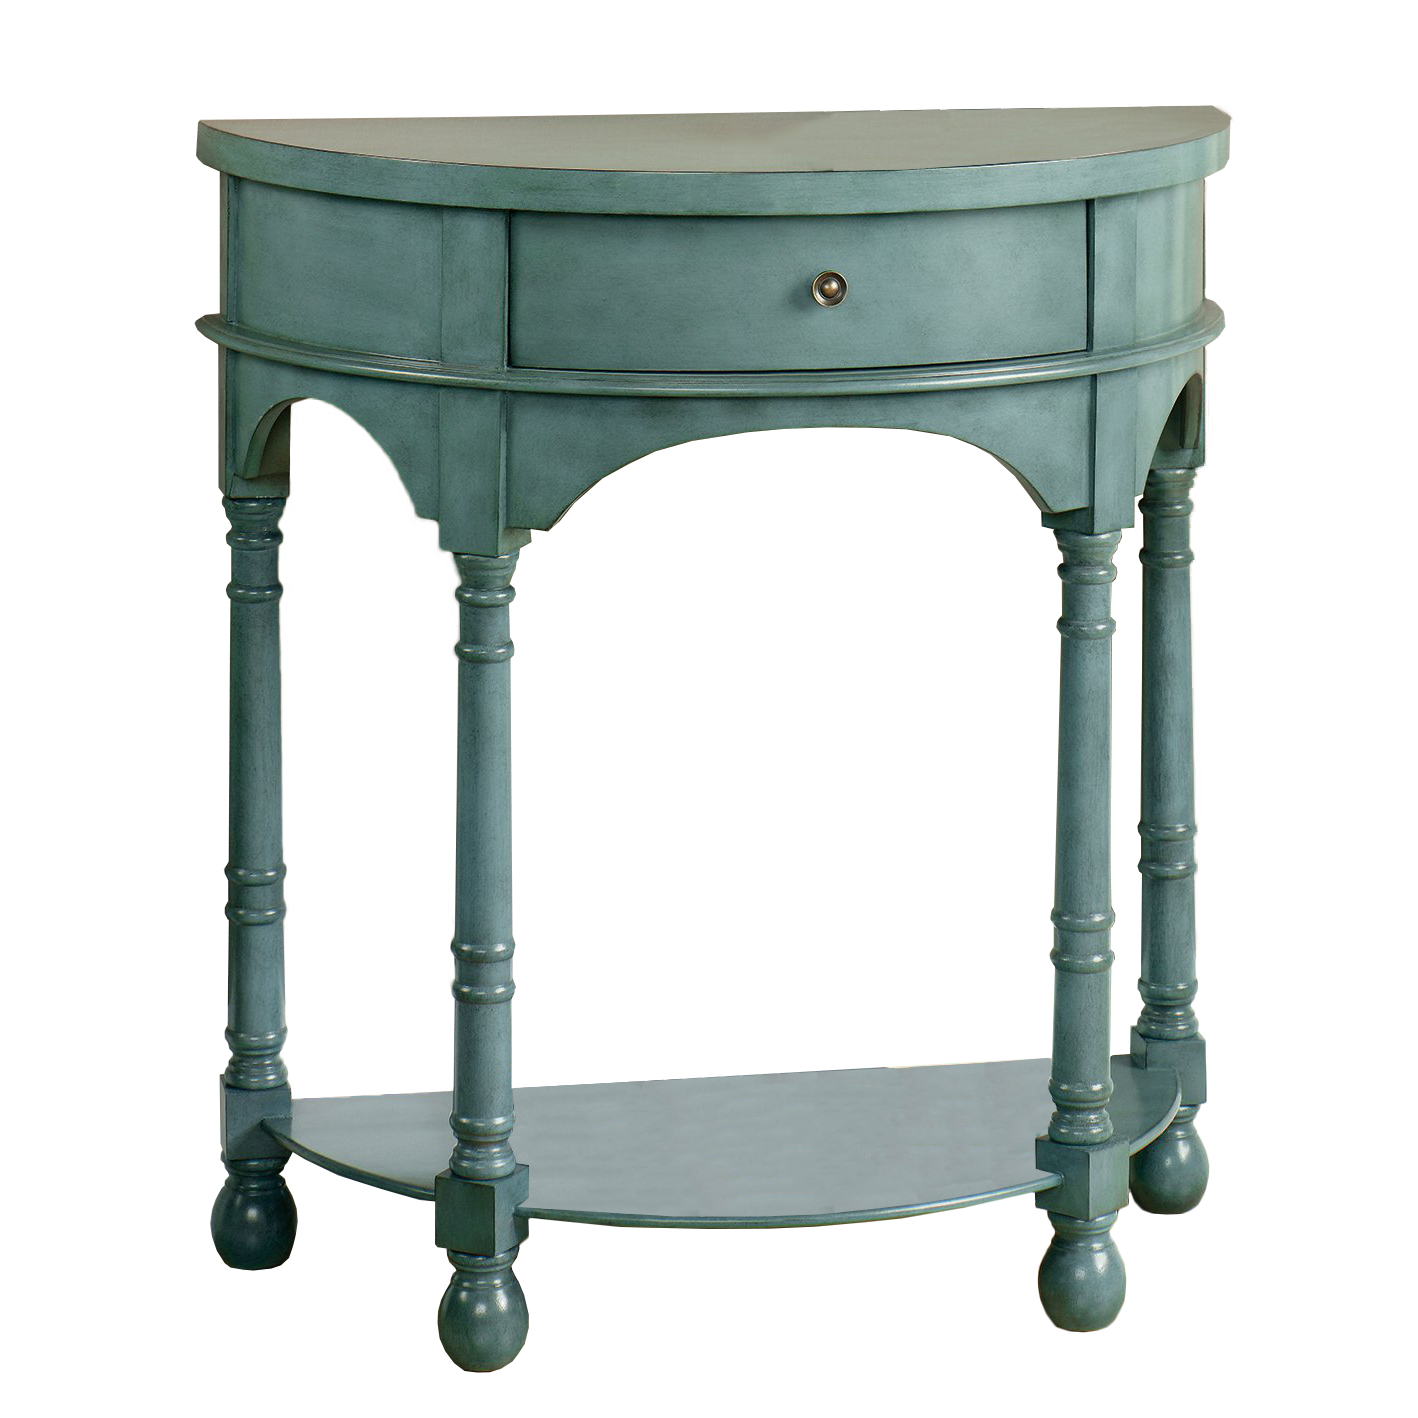 Sauder Harbor View Country Accent Table, Antiqued Teal